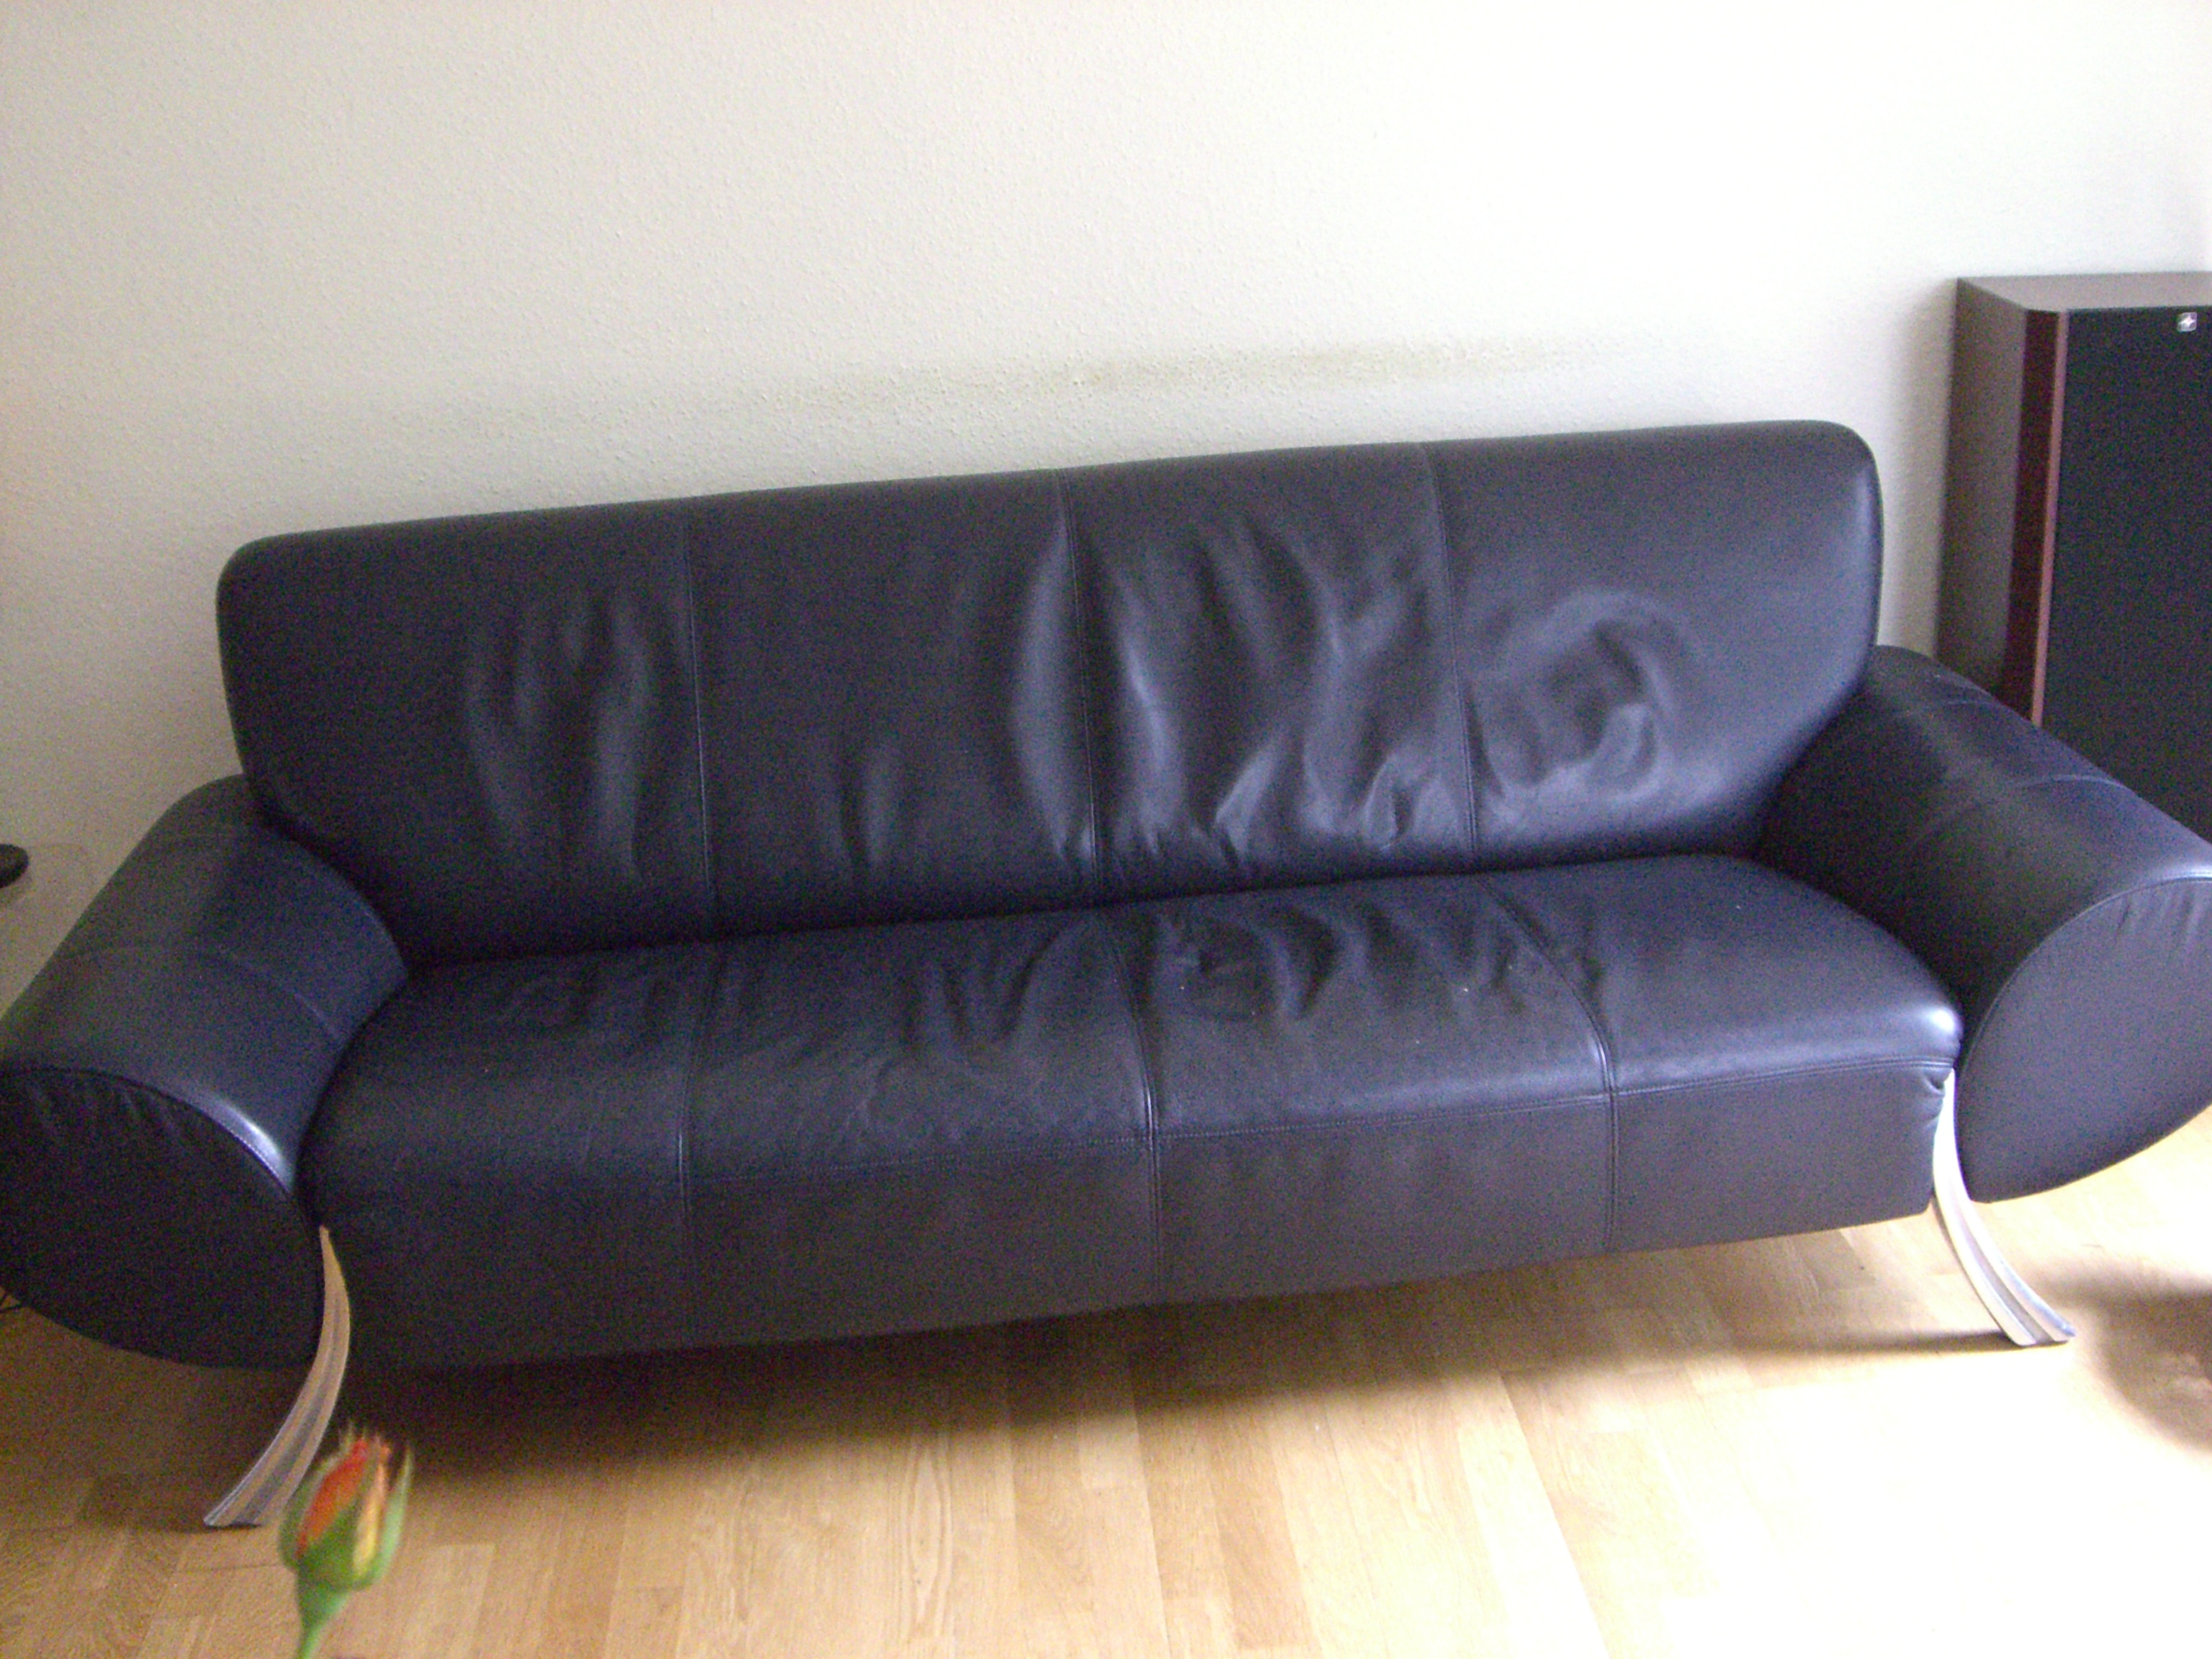 Design klassiker rolf benz sofa in augsburg m bel und for Couch benz